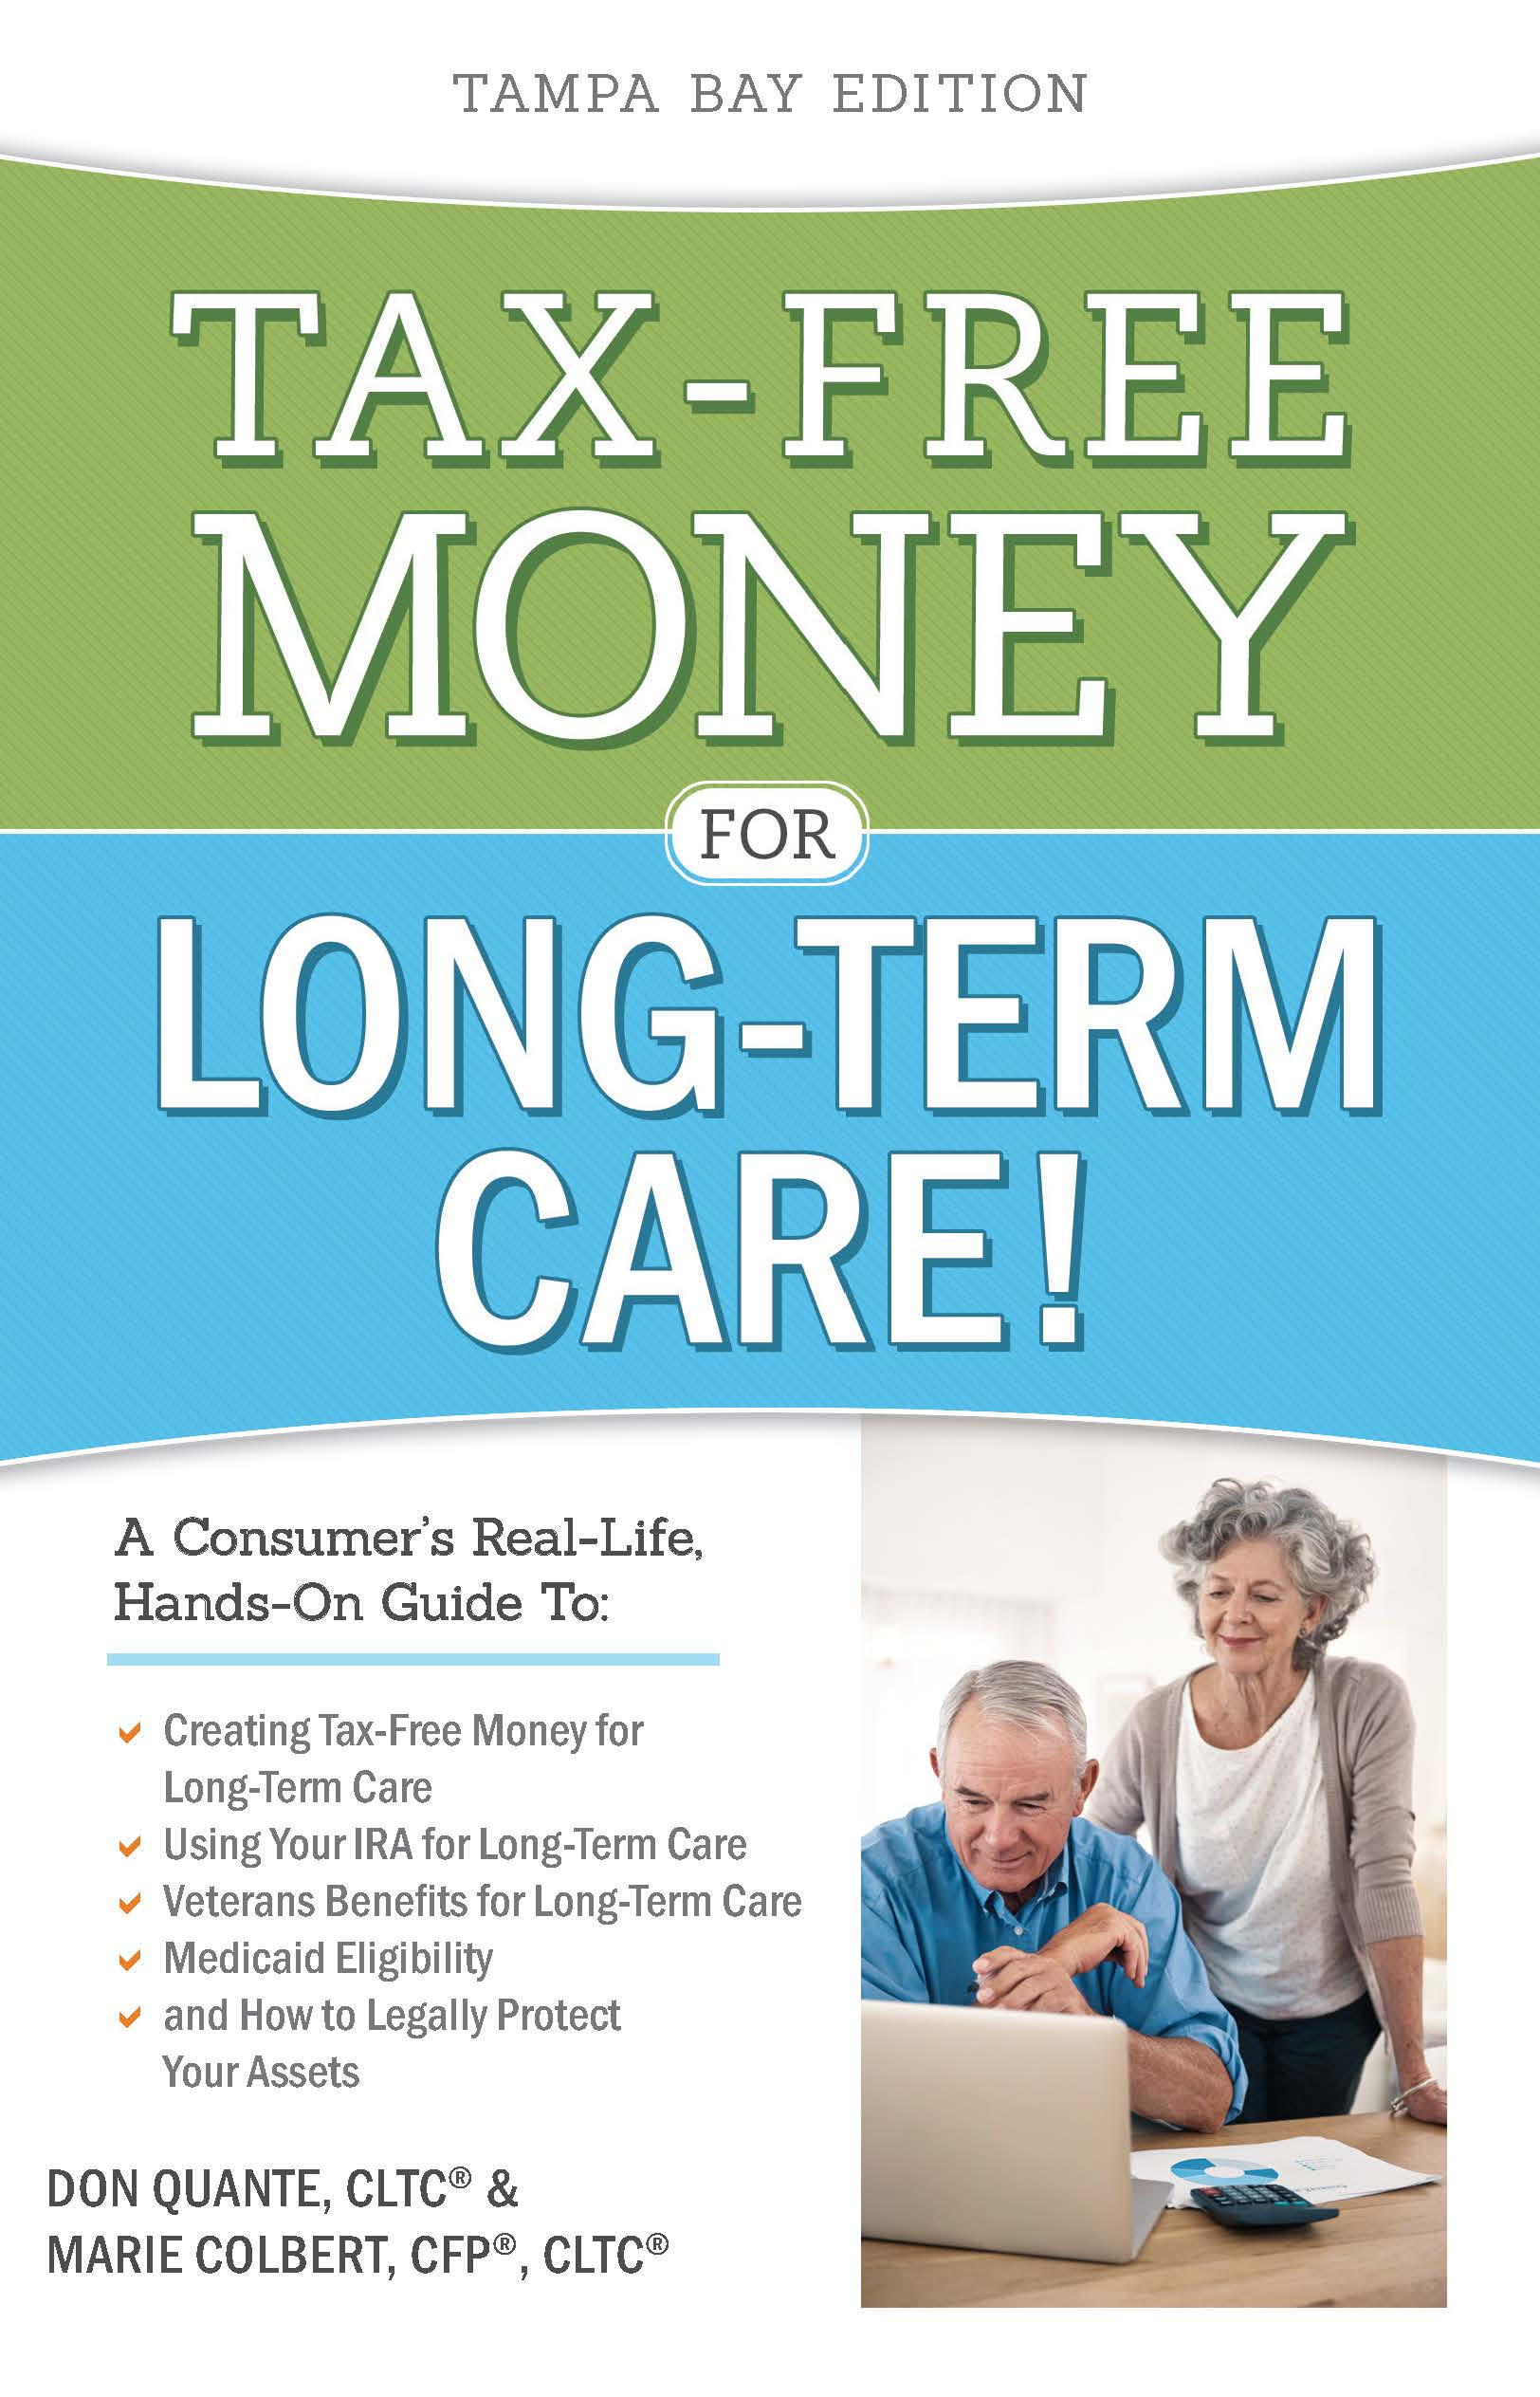 Tax-Free Money for Long-Term care book Tampa, FL Key Planning Partners